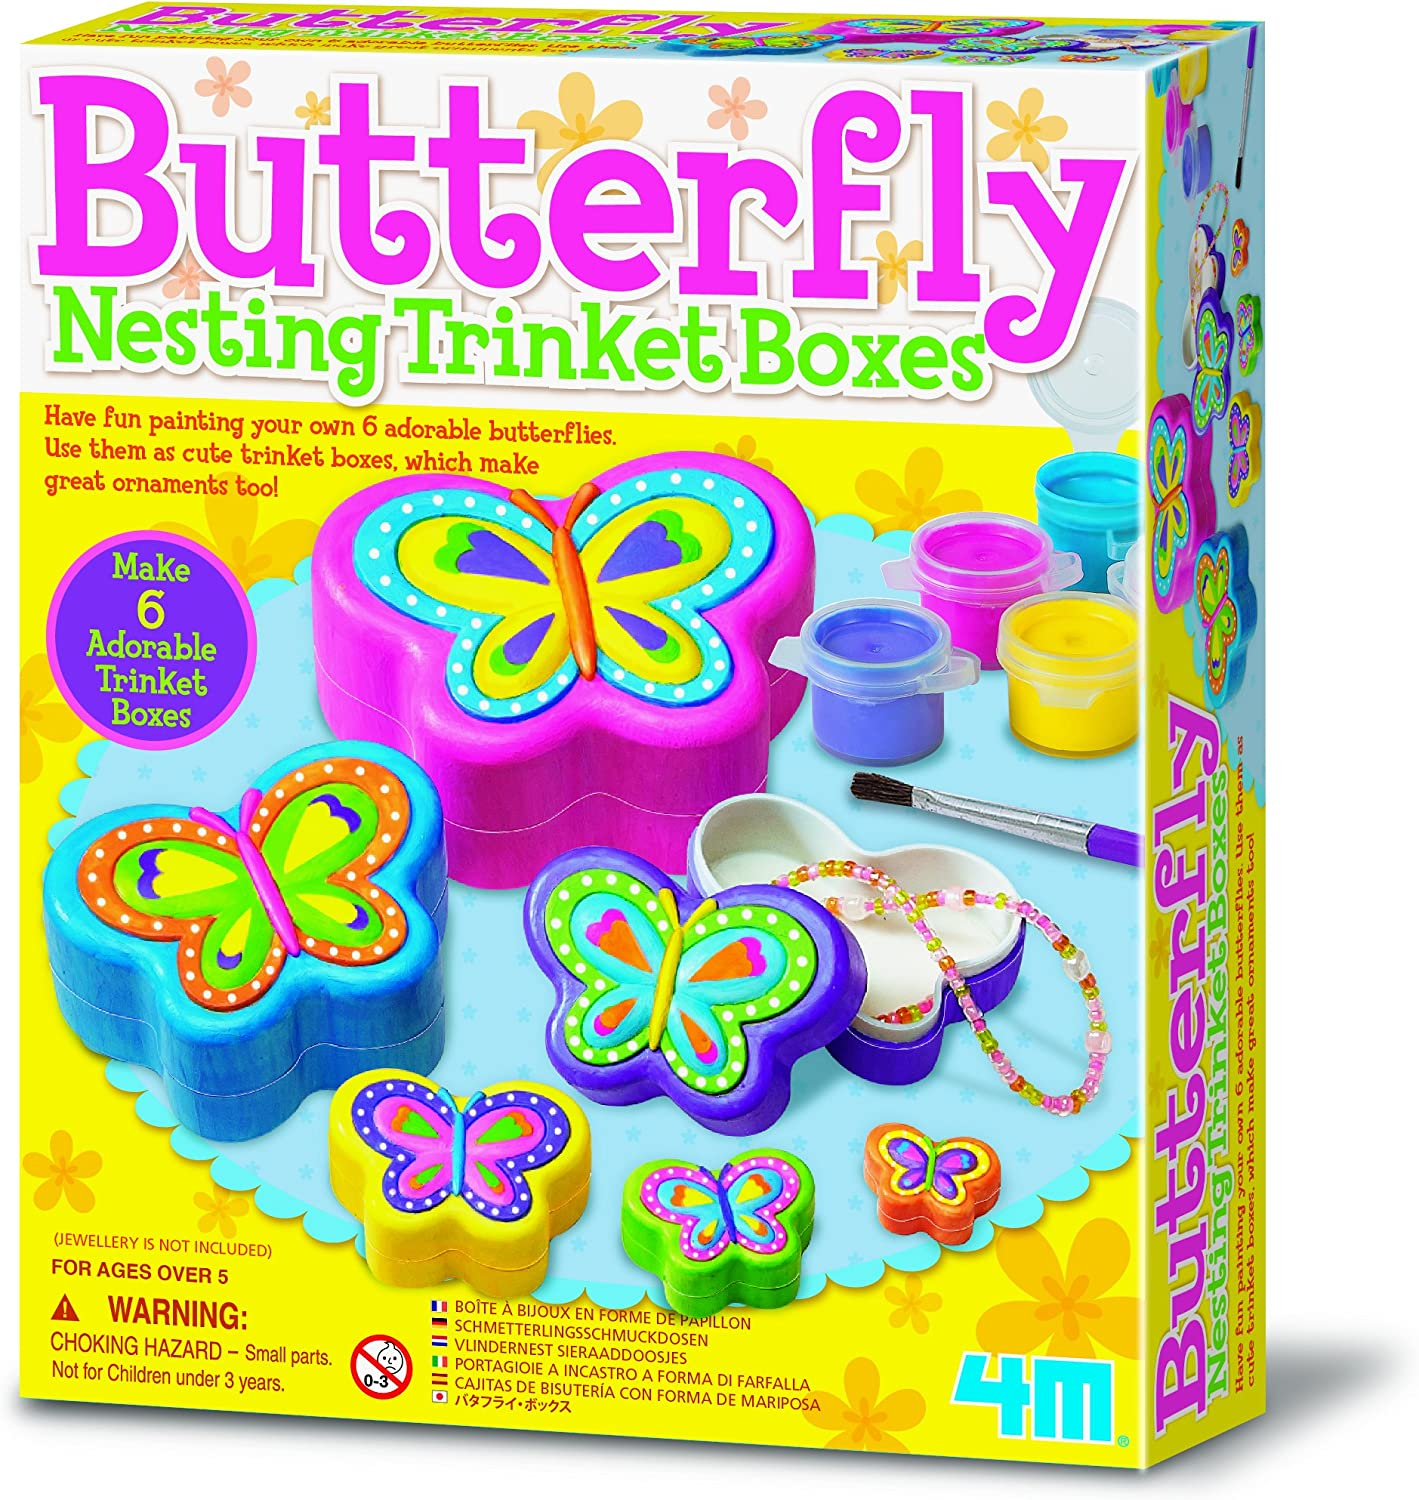 Paint 6 Butterfly Trinket Boxes Suitable For 5 Year Old Toy Personalise Gift Present Improve Their Creative Development Arts Crafts Christmas Birthday Game Accessory Girls Girl Kids Childrens Amazon Co Uk Toys